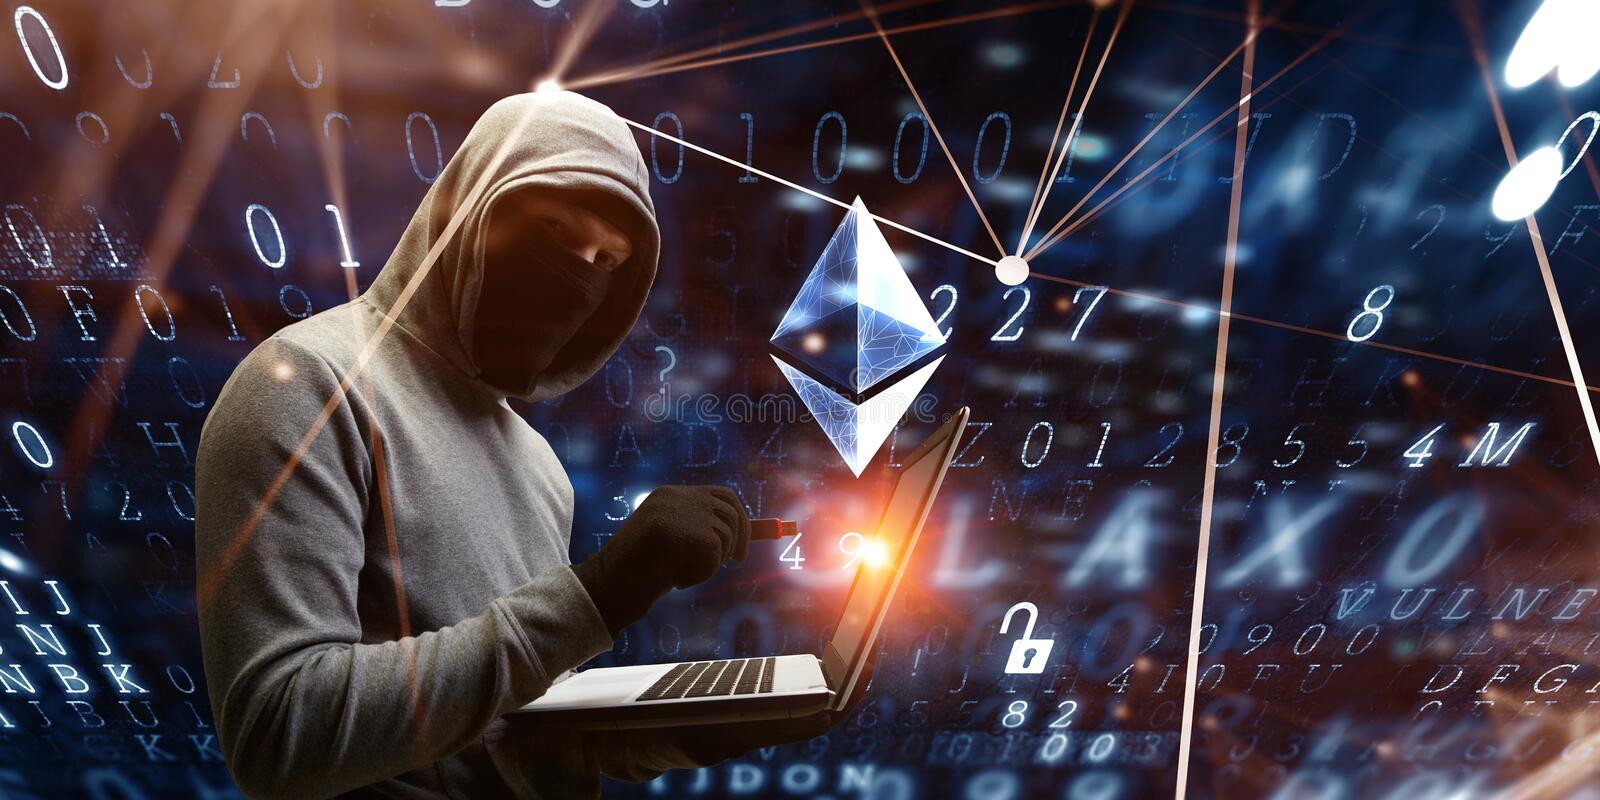 Haking into crypto world . Mixed media. Haker guy in hoodie and crypto currency concept on dark background. 3d rendering stock illustration